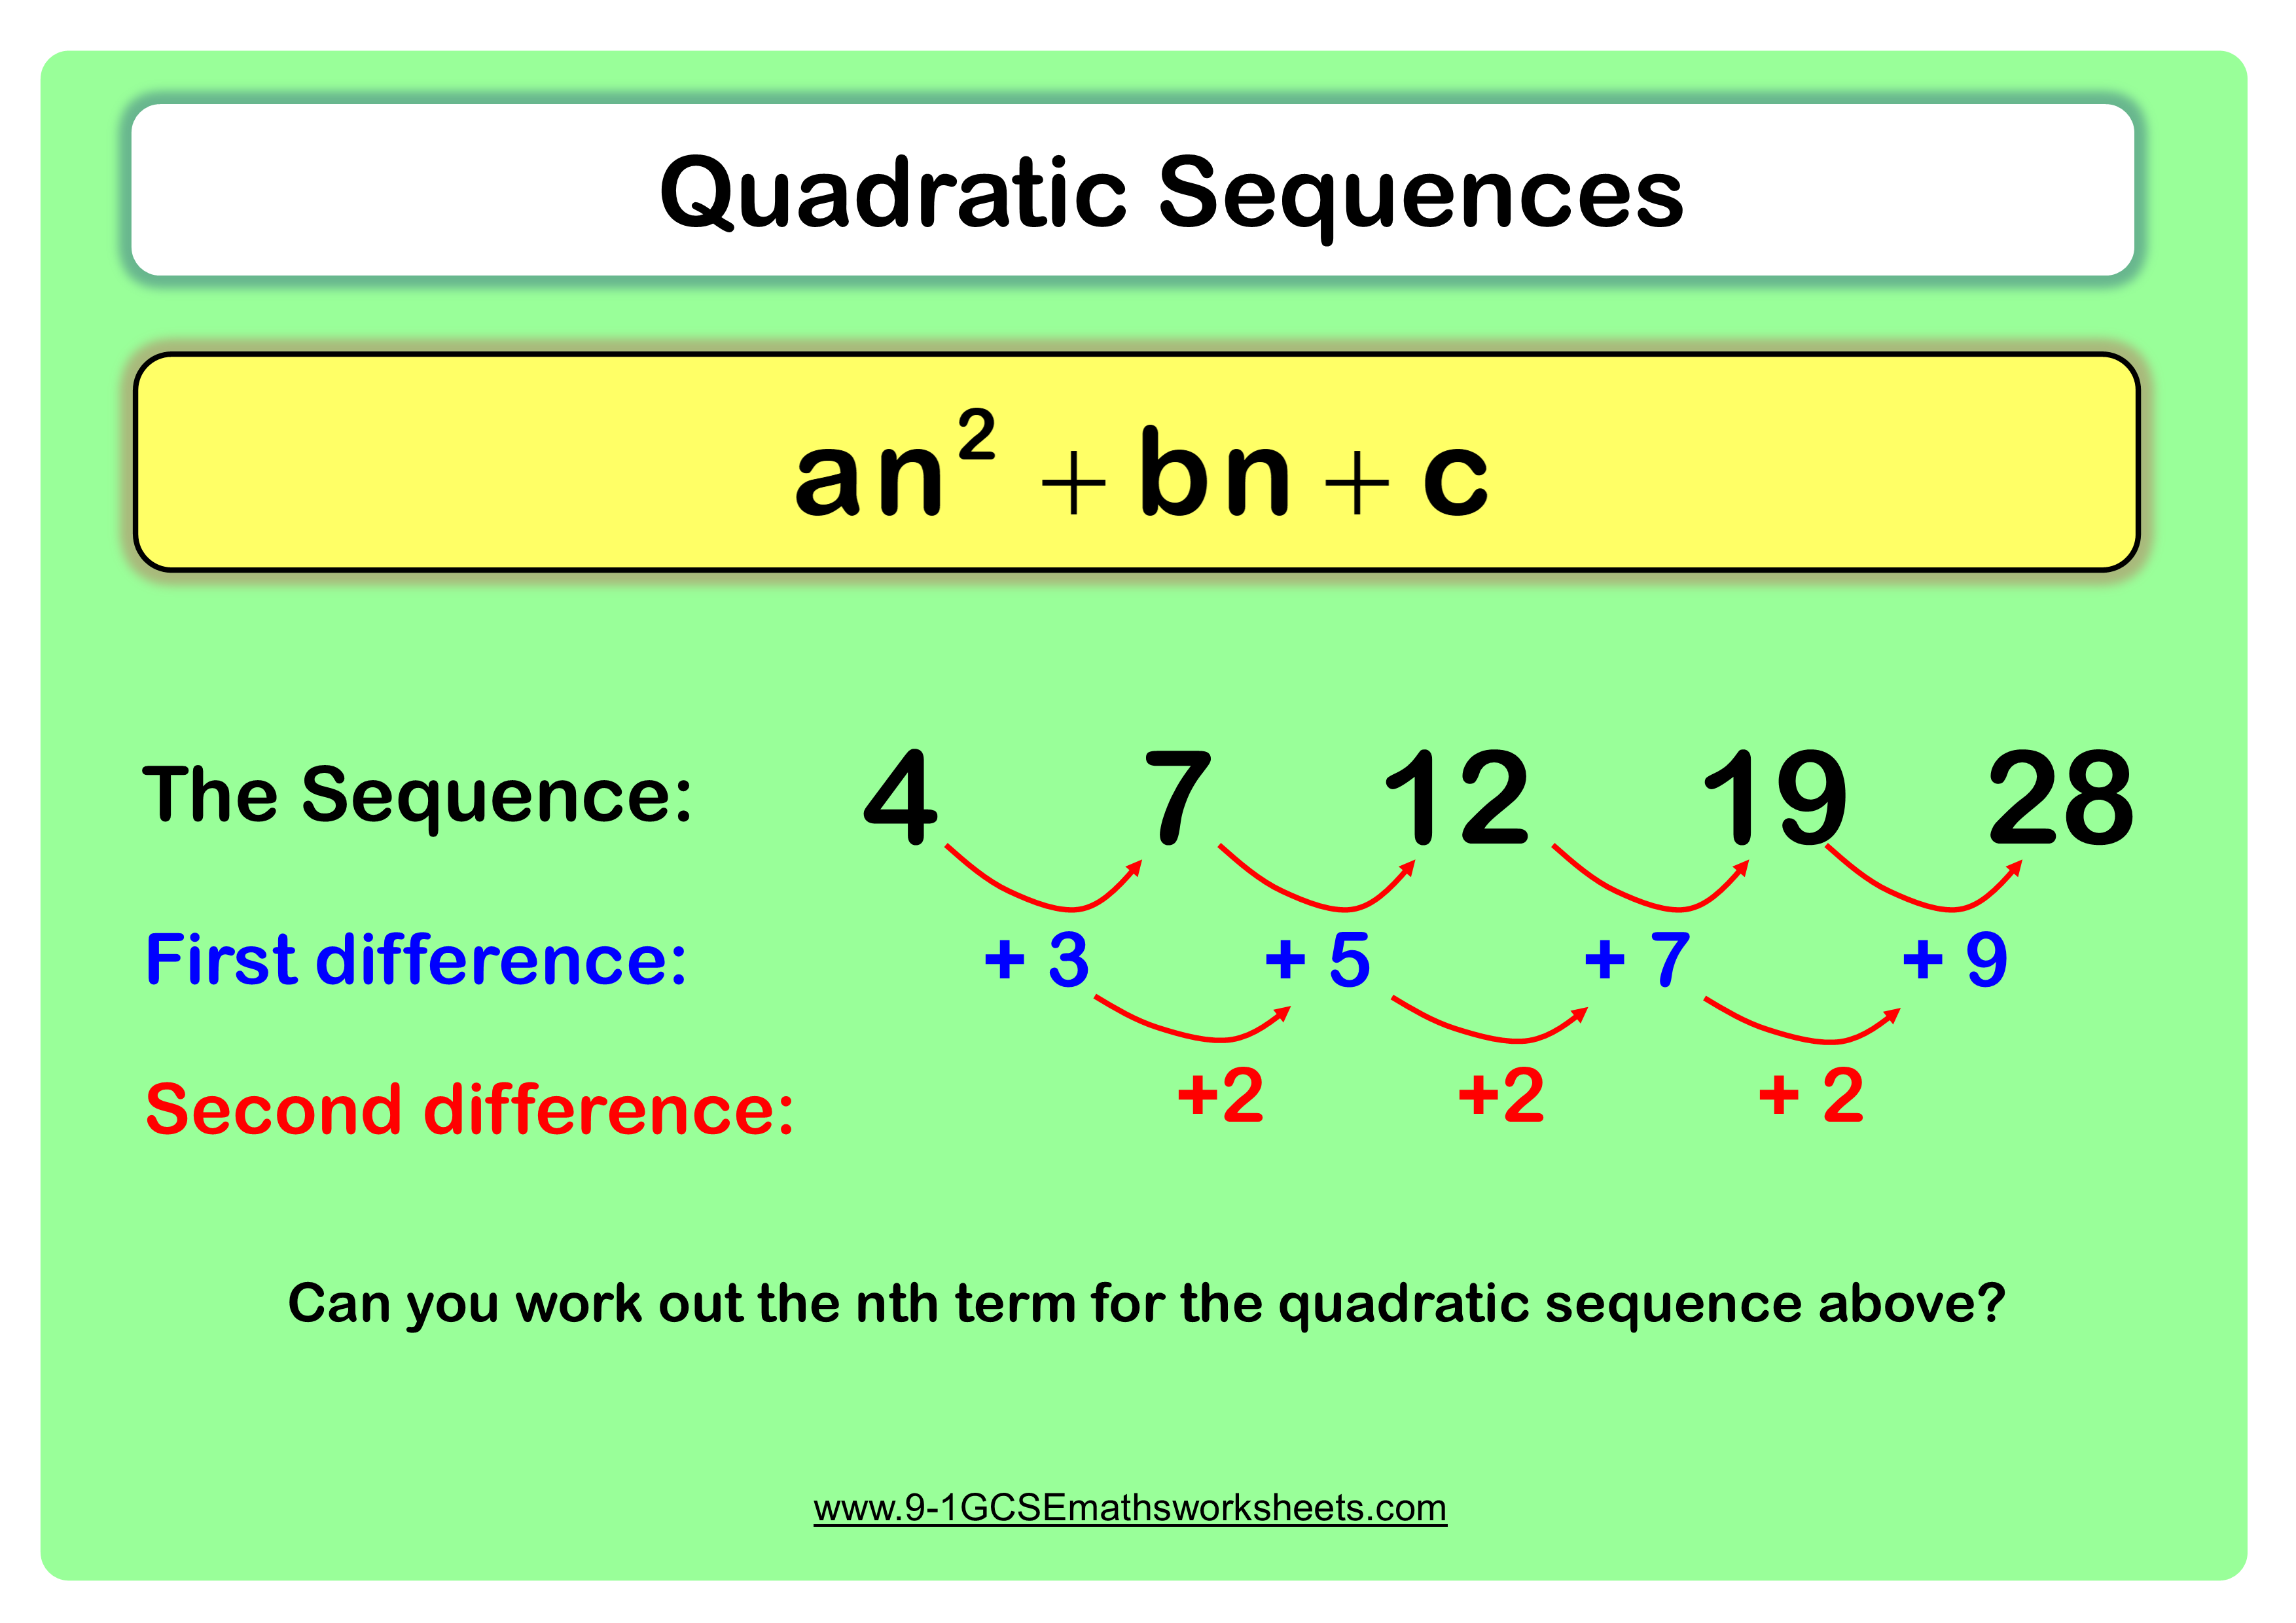 Quadratic Sequences Example